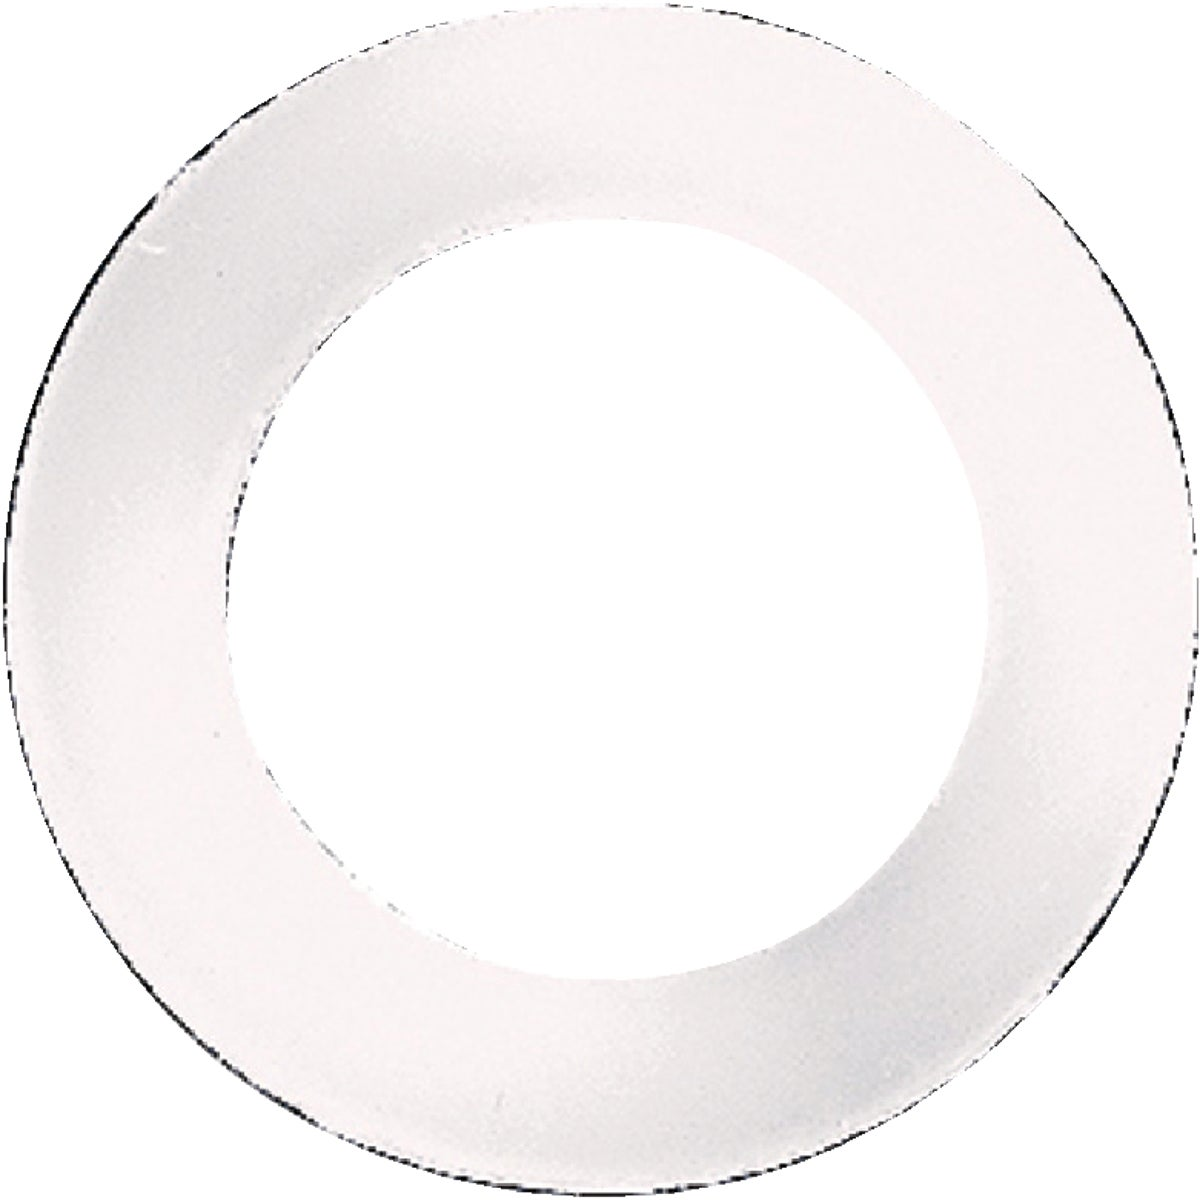 PFISTER DIVERTER WASHER - 35692B by Danco Perfect Match